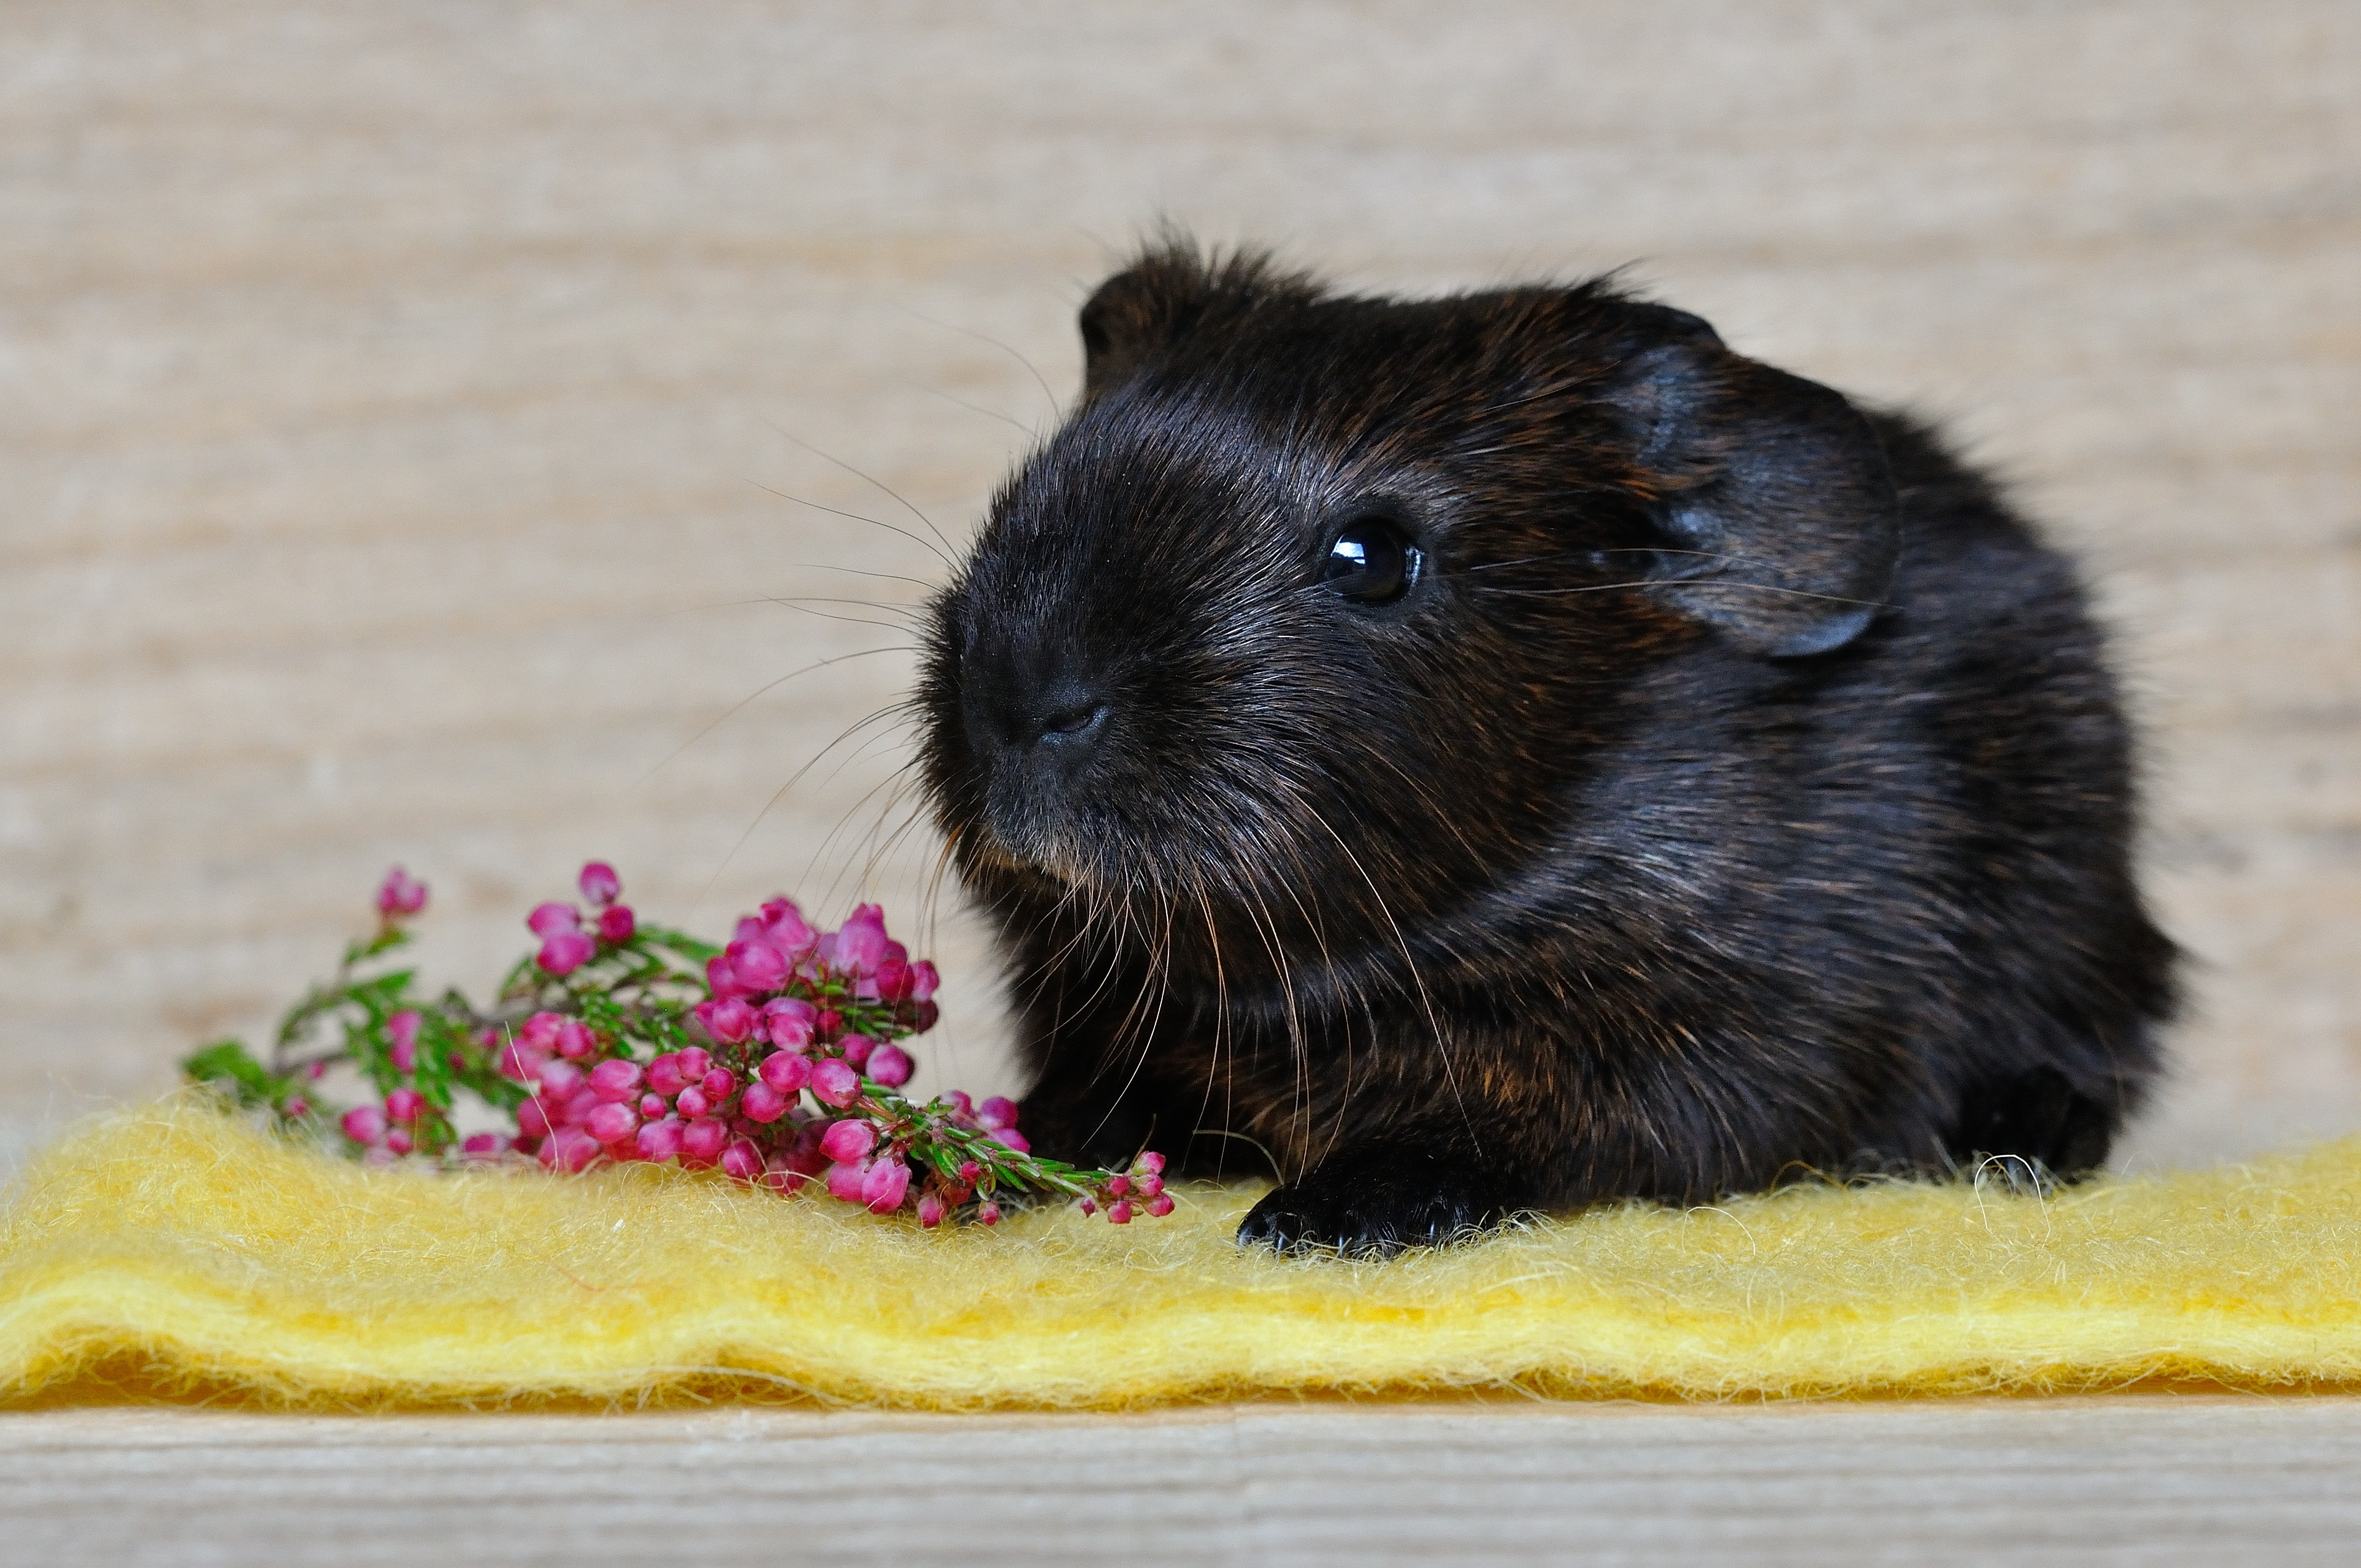 139626 download wallpaper Animals, Guinea Pig, Rodent screensavers and pictures for free